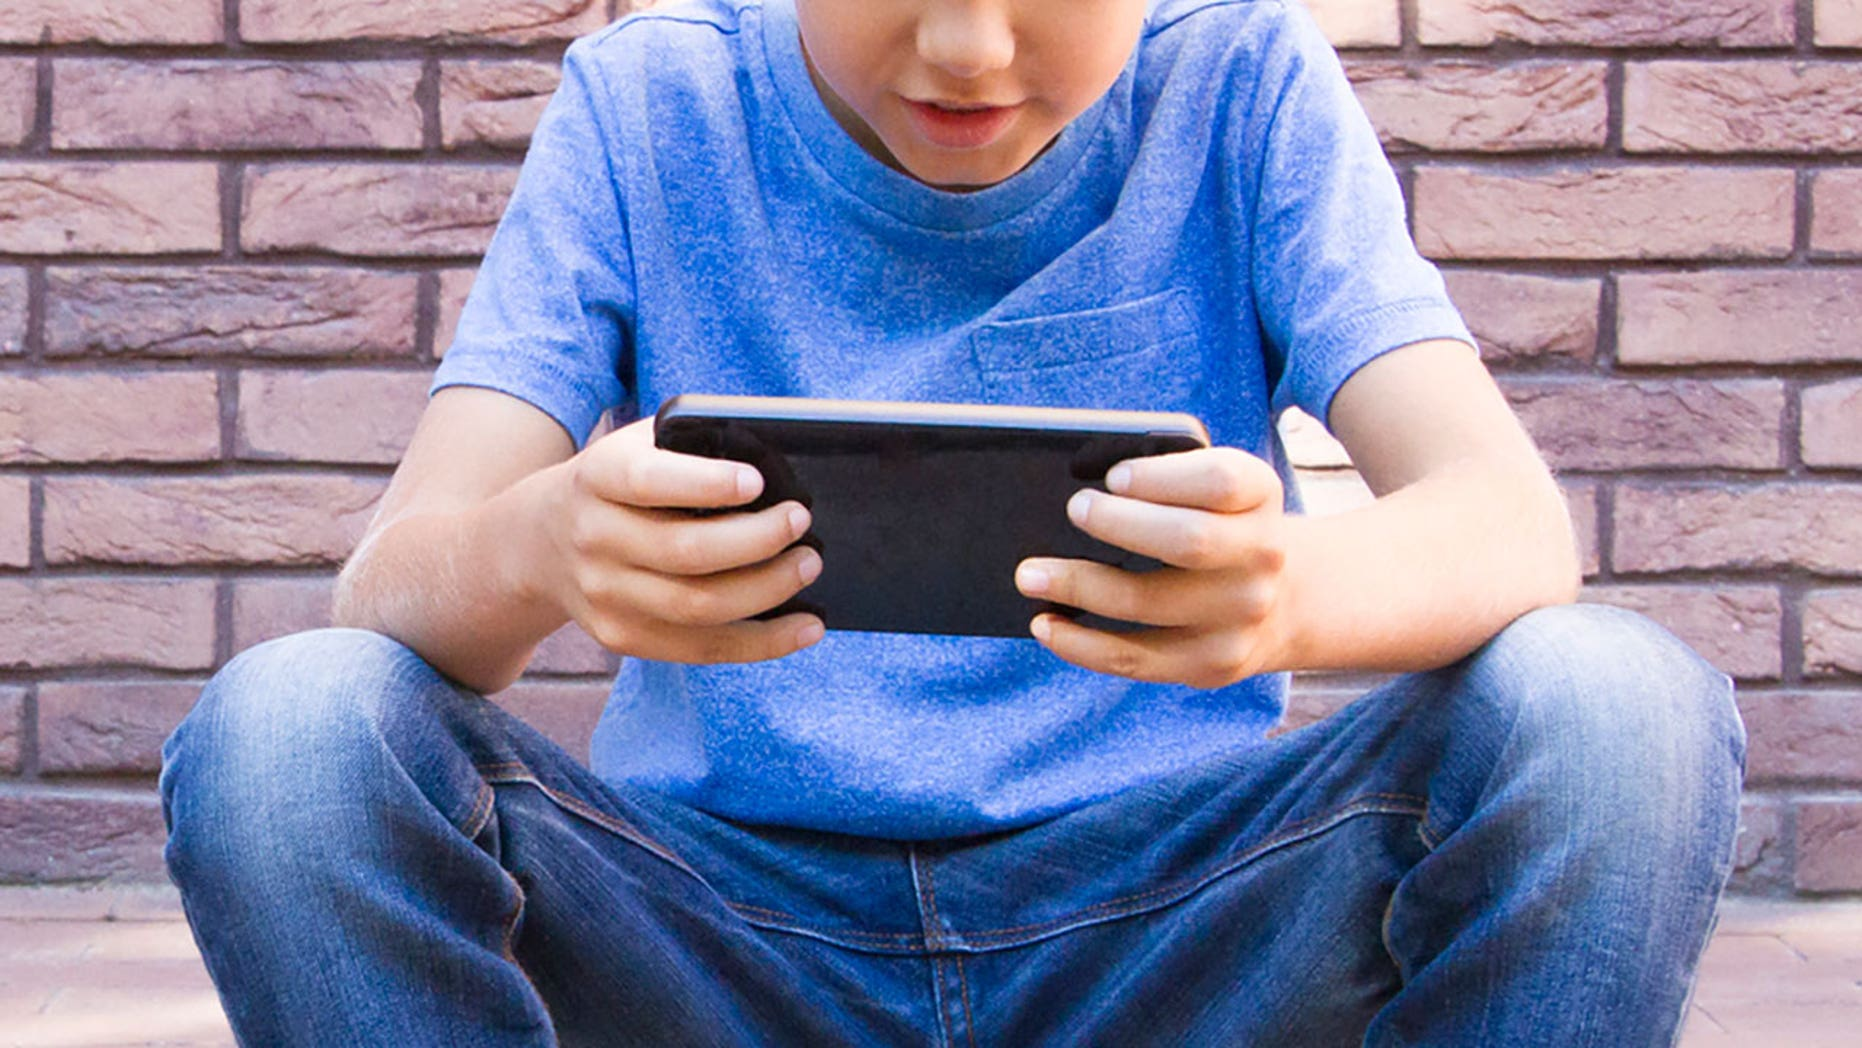 According to recent data, at least 63 percent of U.S. households include at least one frequent gamer.